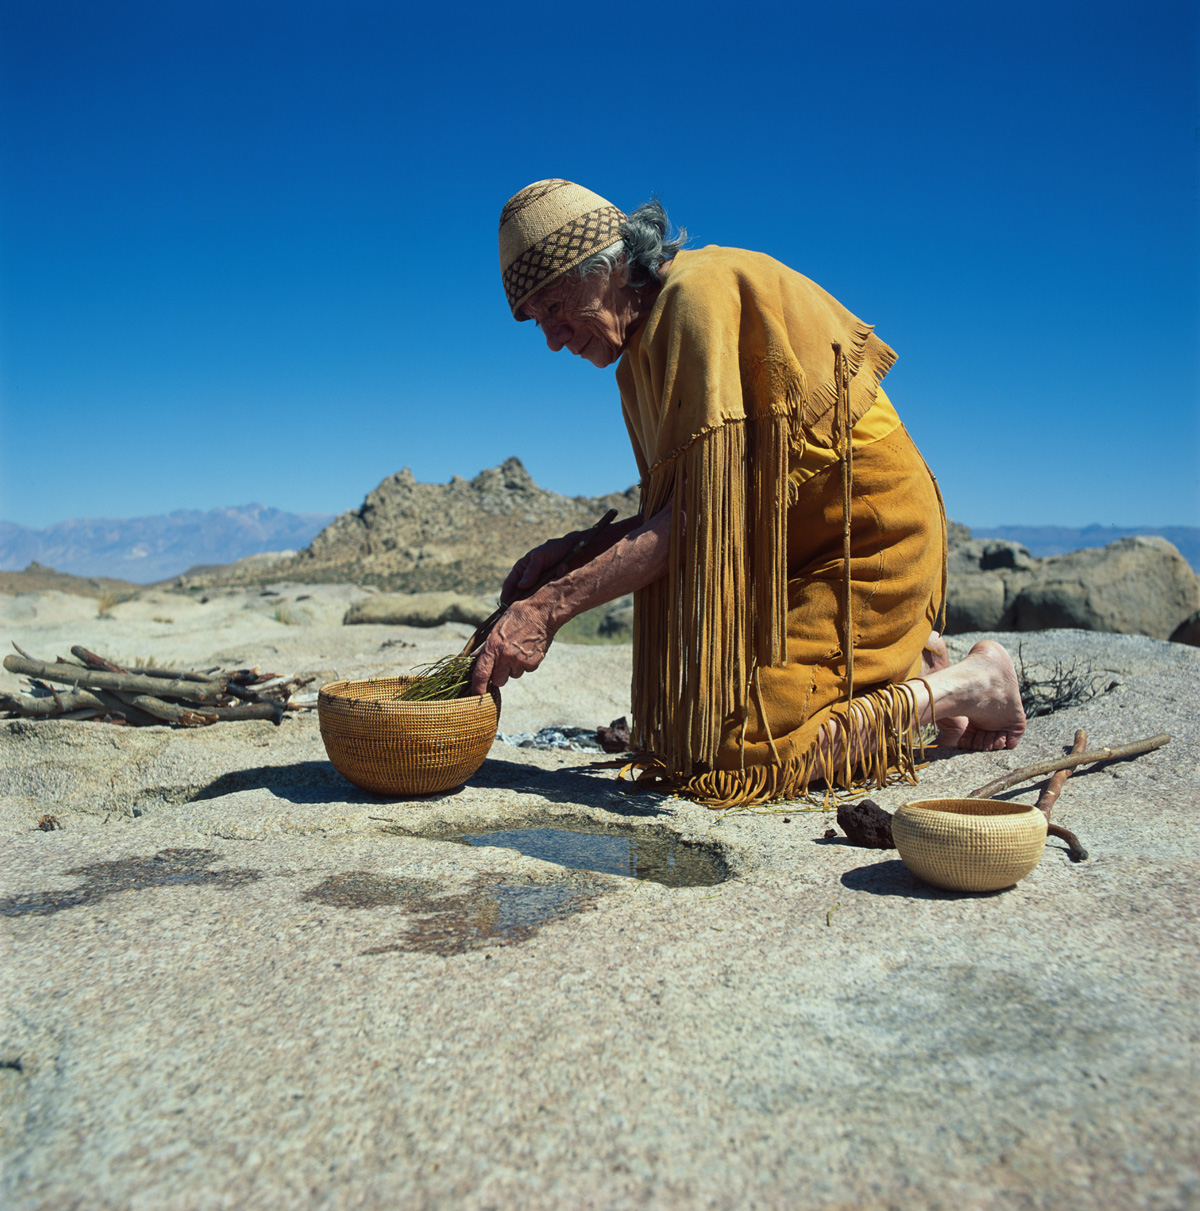 USA - Native Americans - Paiute - Shoshone - Clara from Bigpine making traditional tea